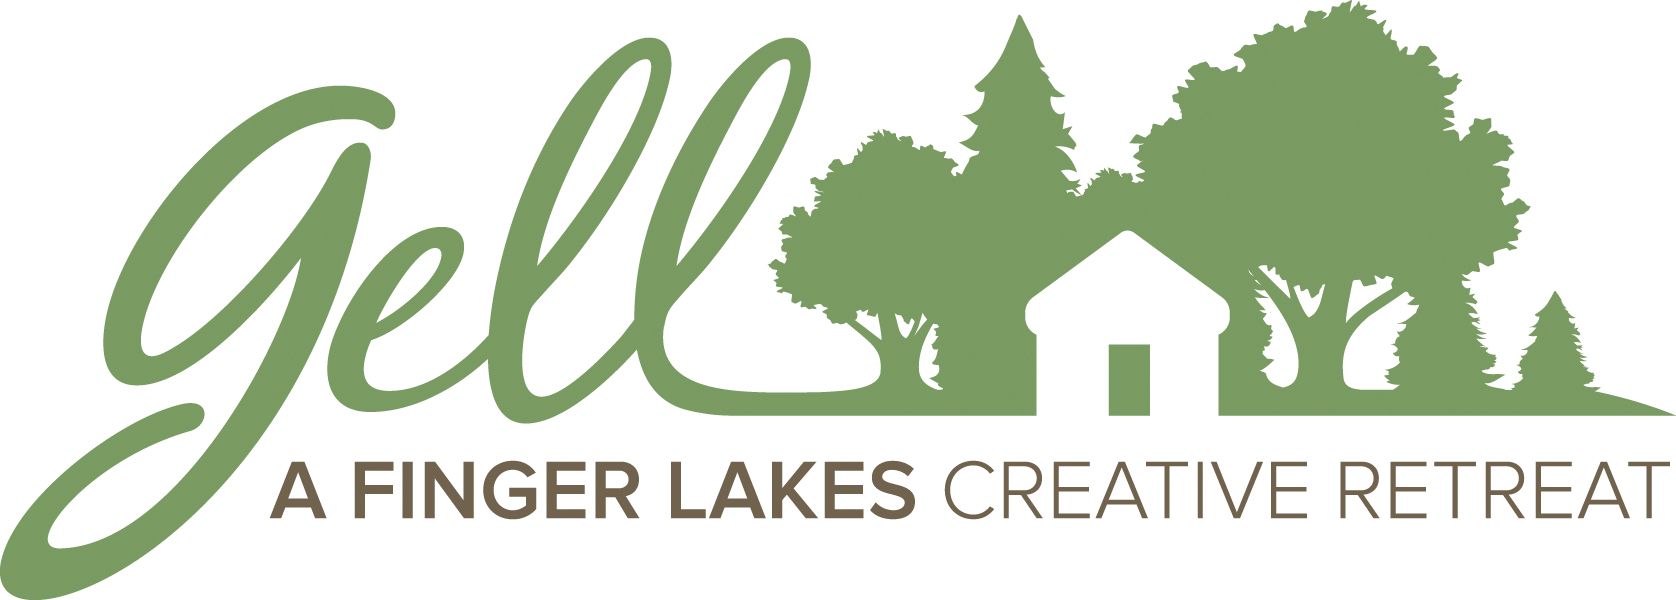 Gell Center of the Finger Lakes Name, Logo and Tagline